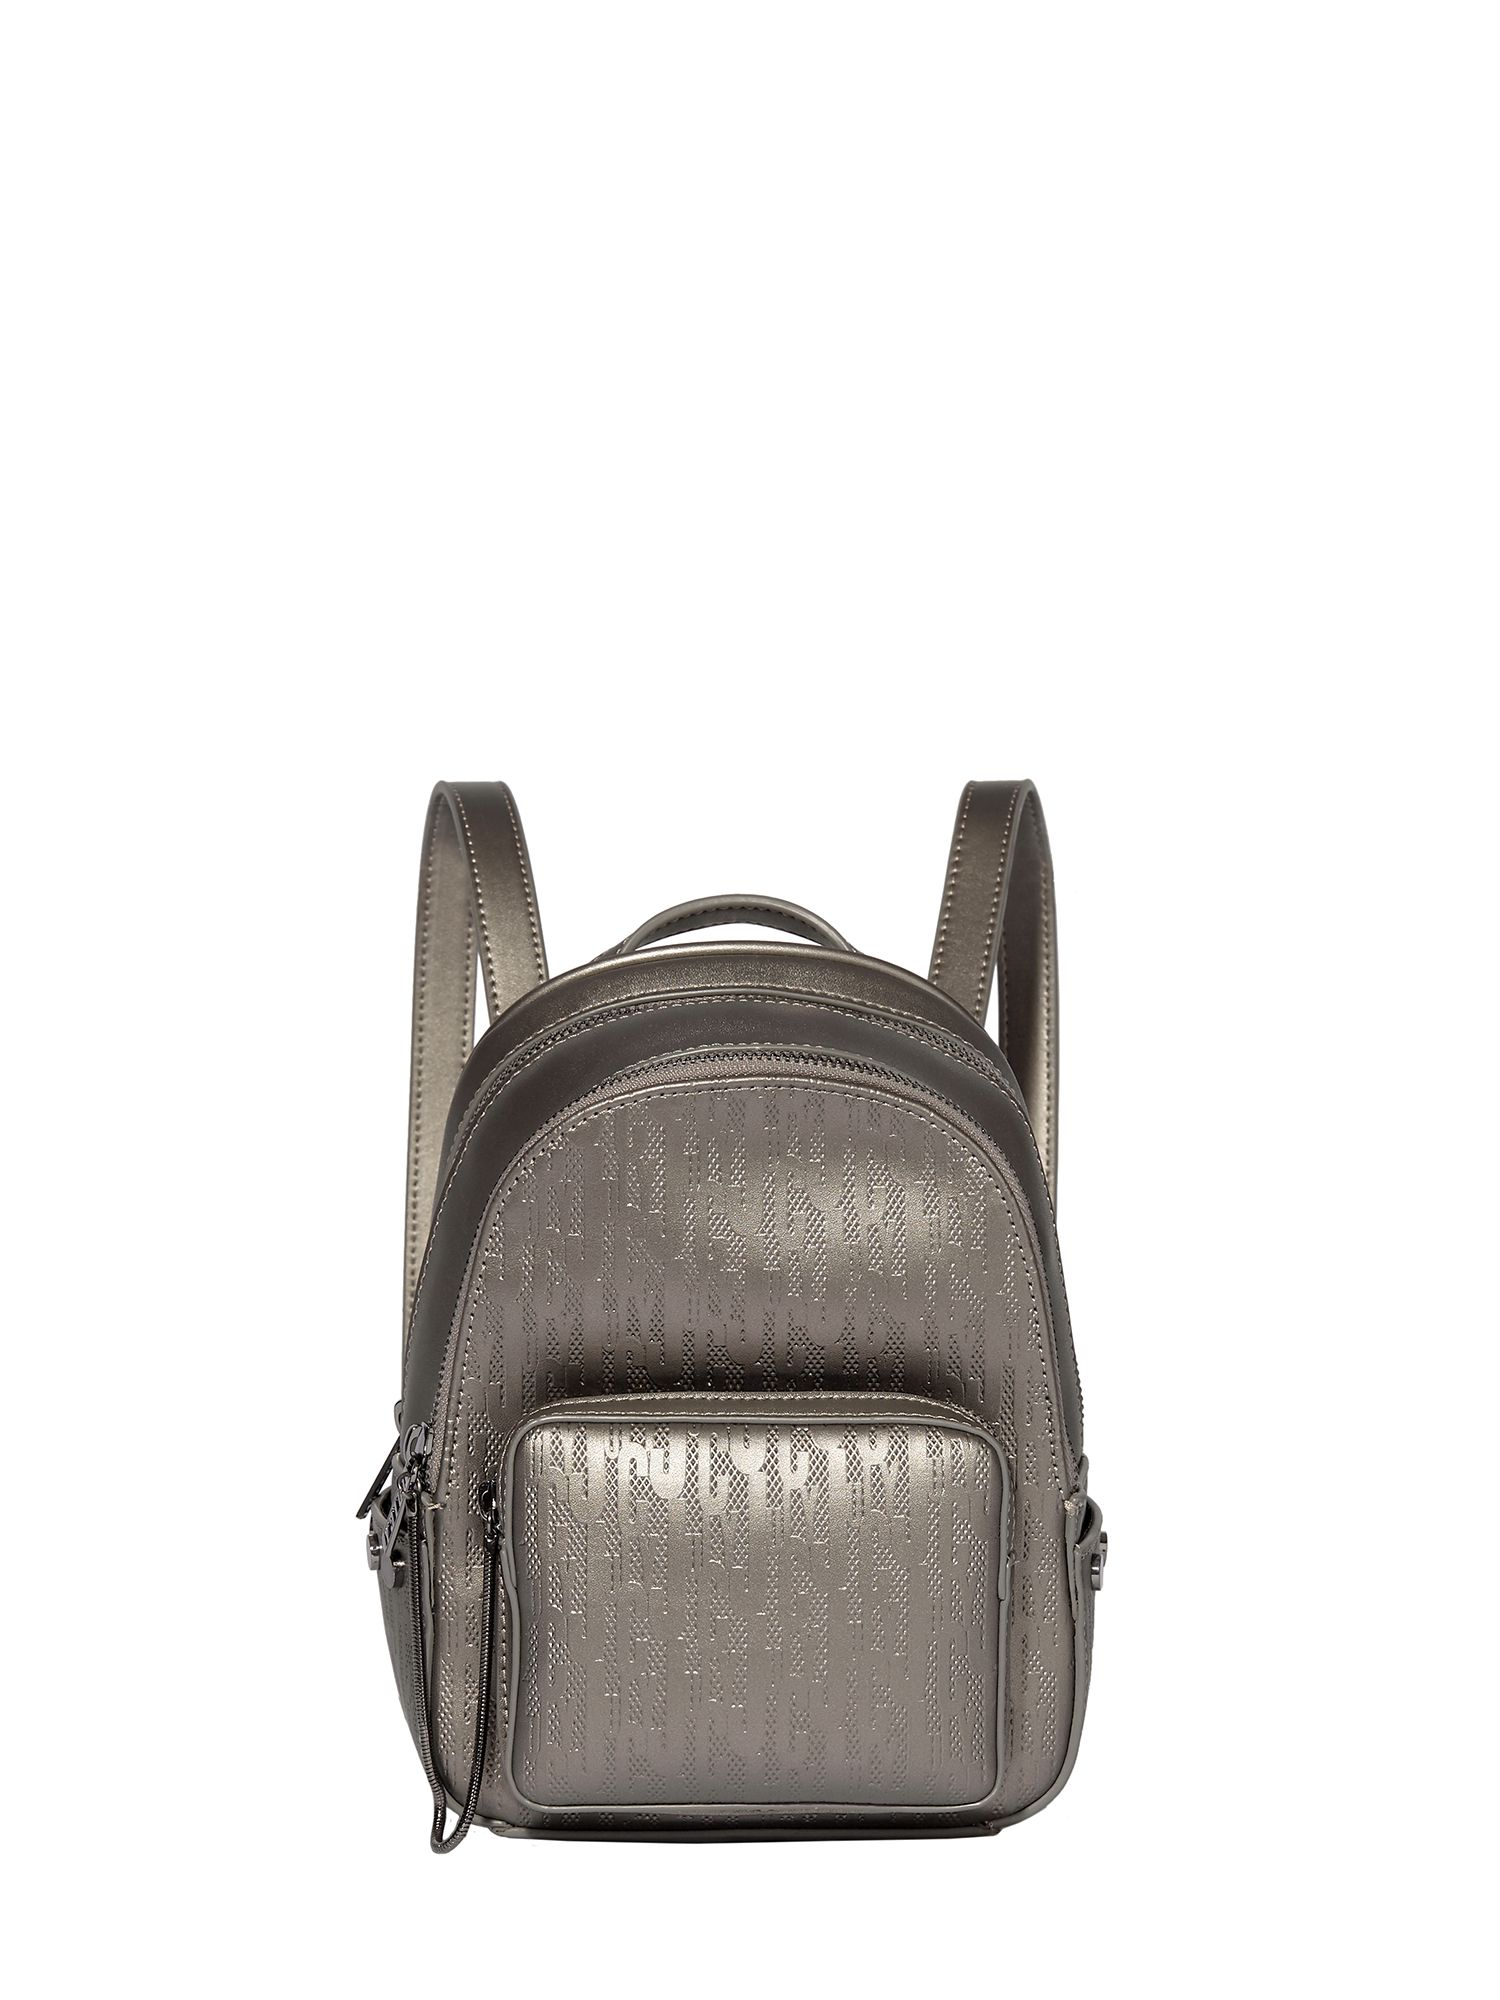 Juicy by Juicy Couture Aspen mini zippy backpack, Grey